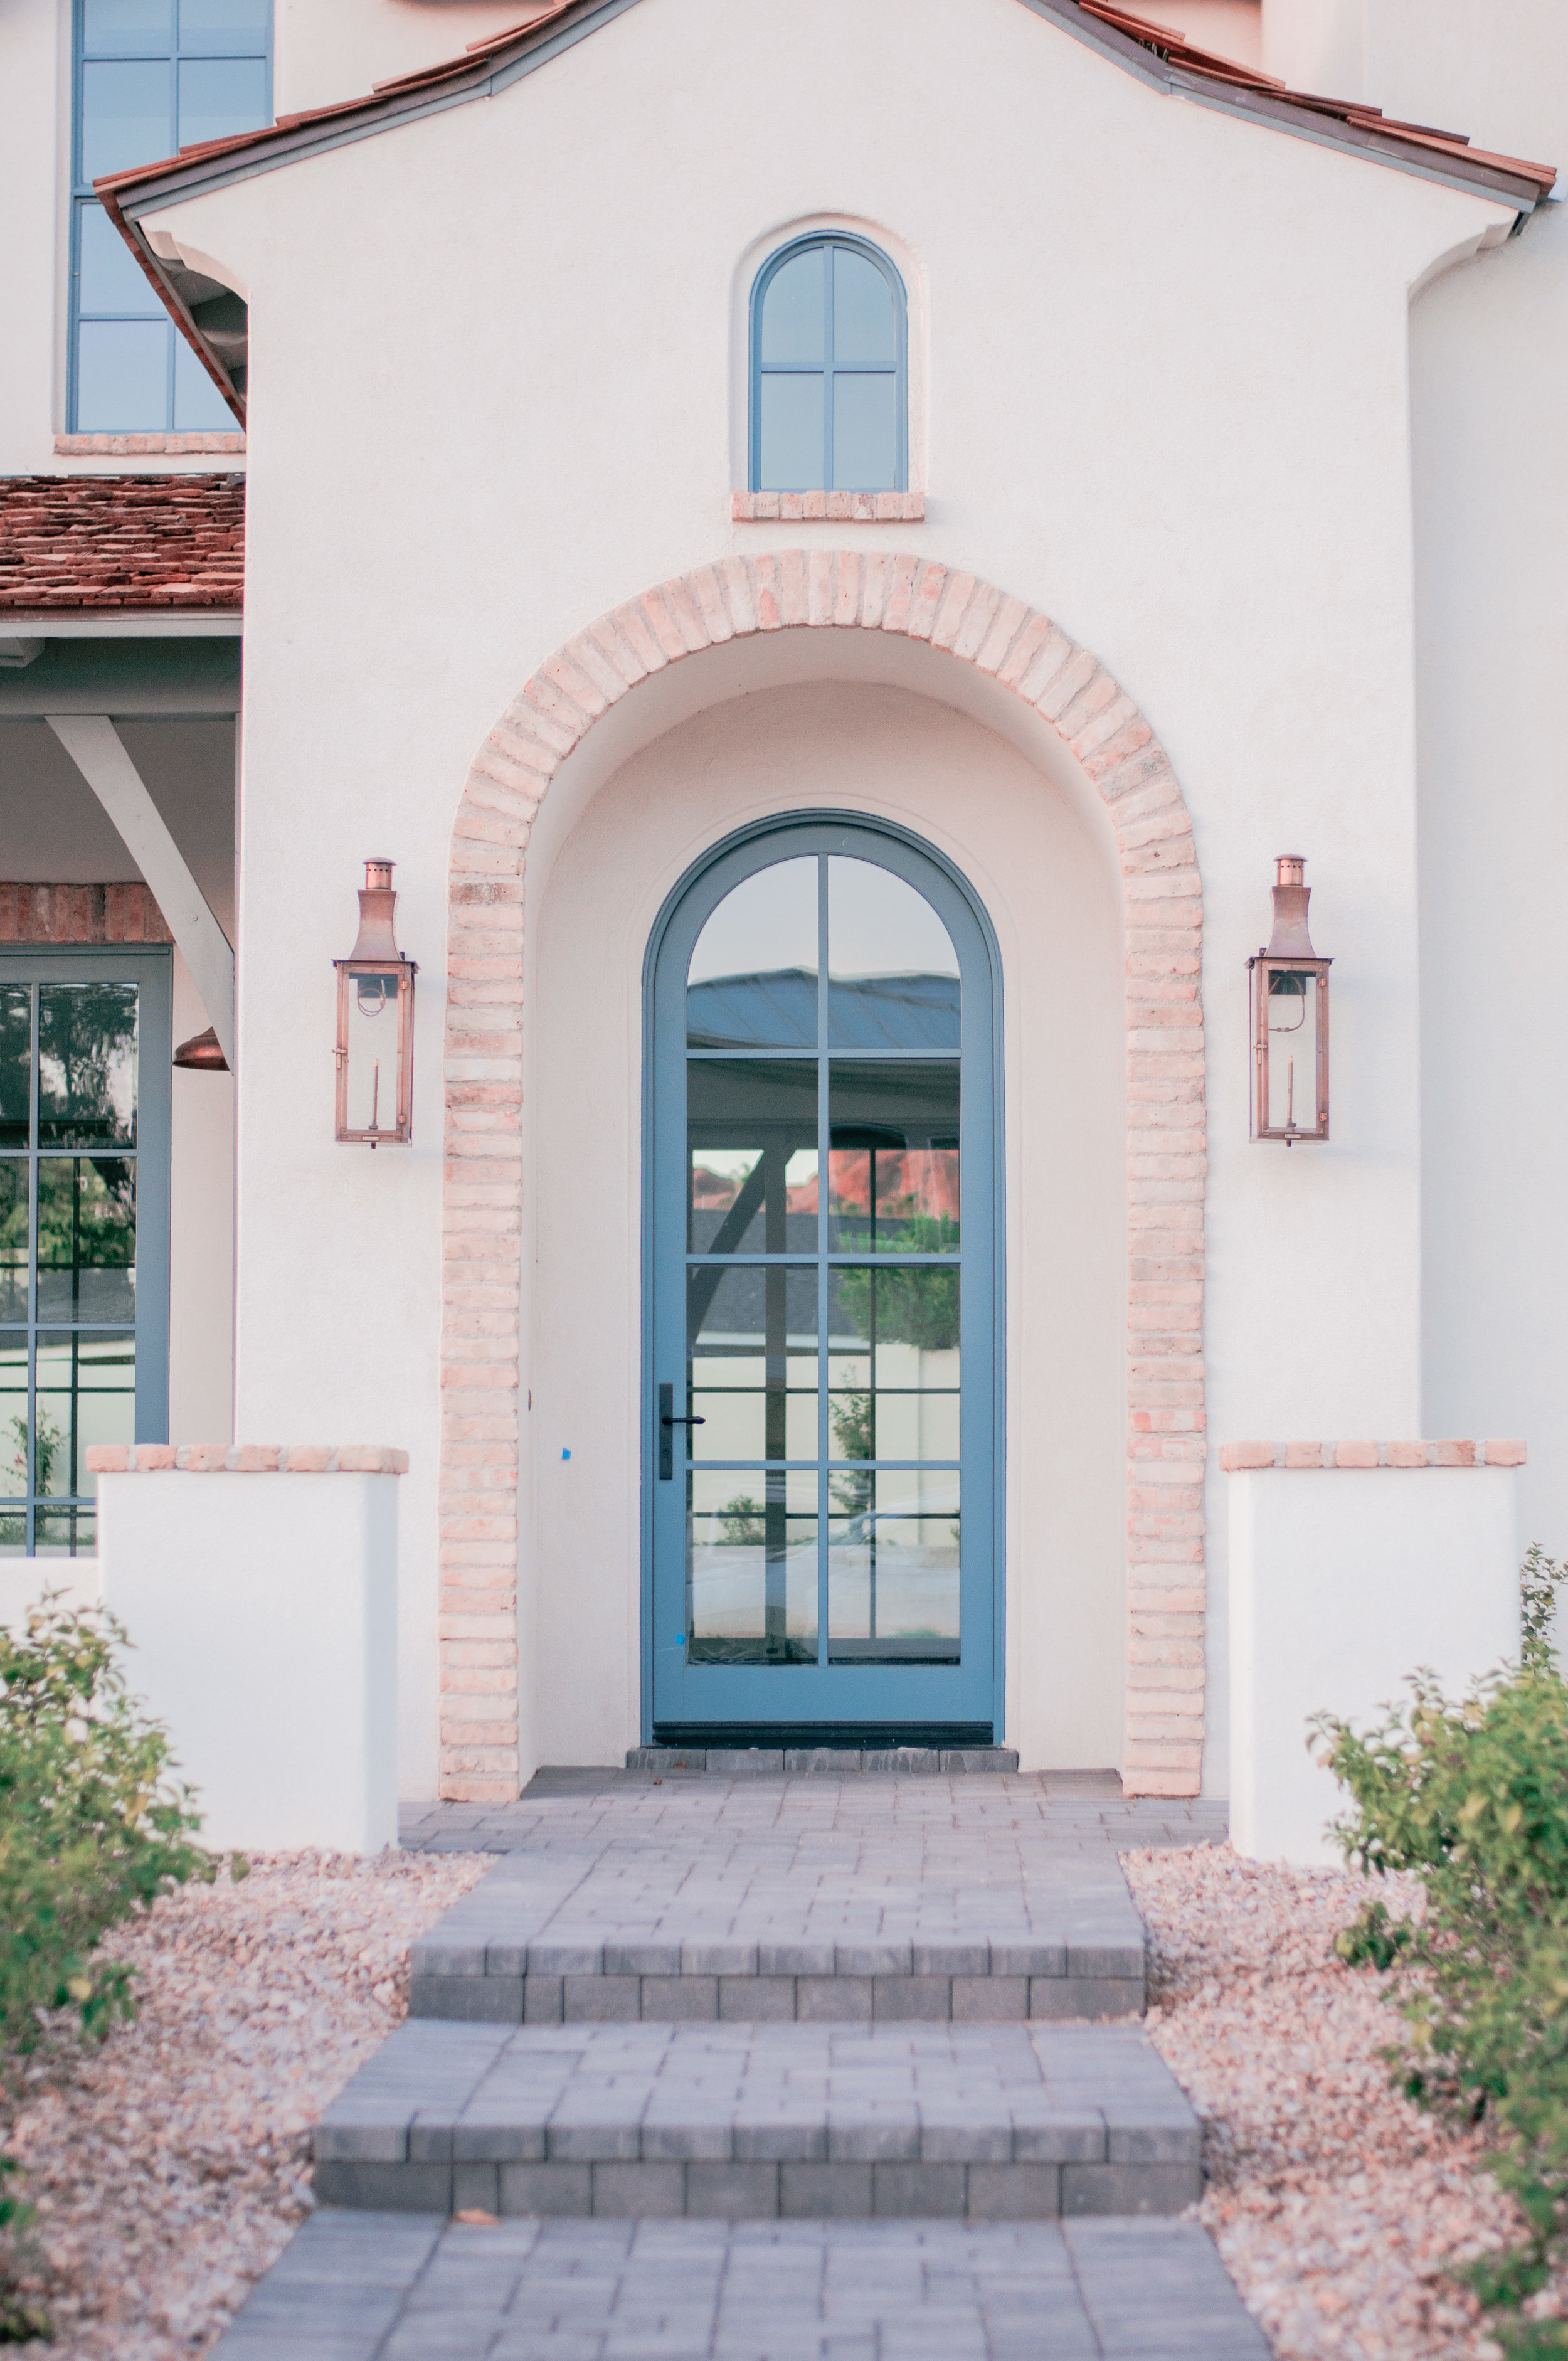 A charming, colorful front door in Arcadia, Phoenix, Arizona